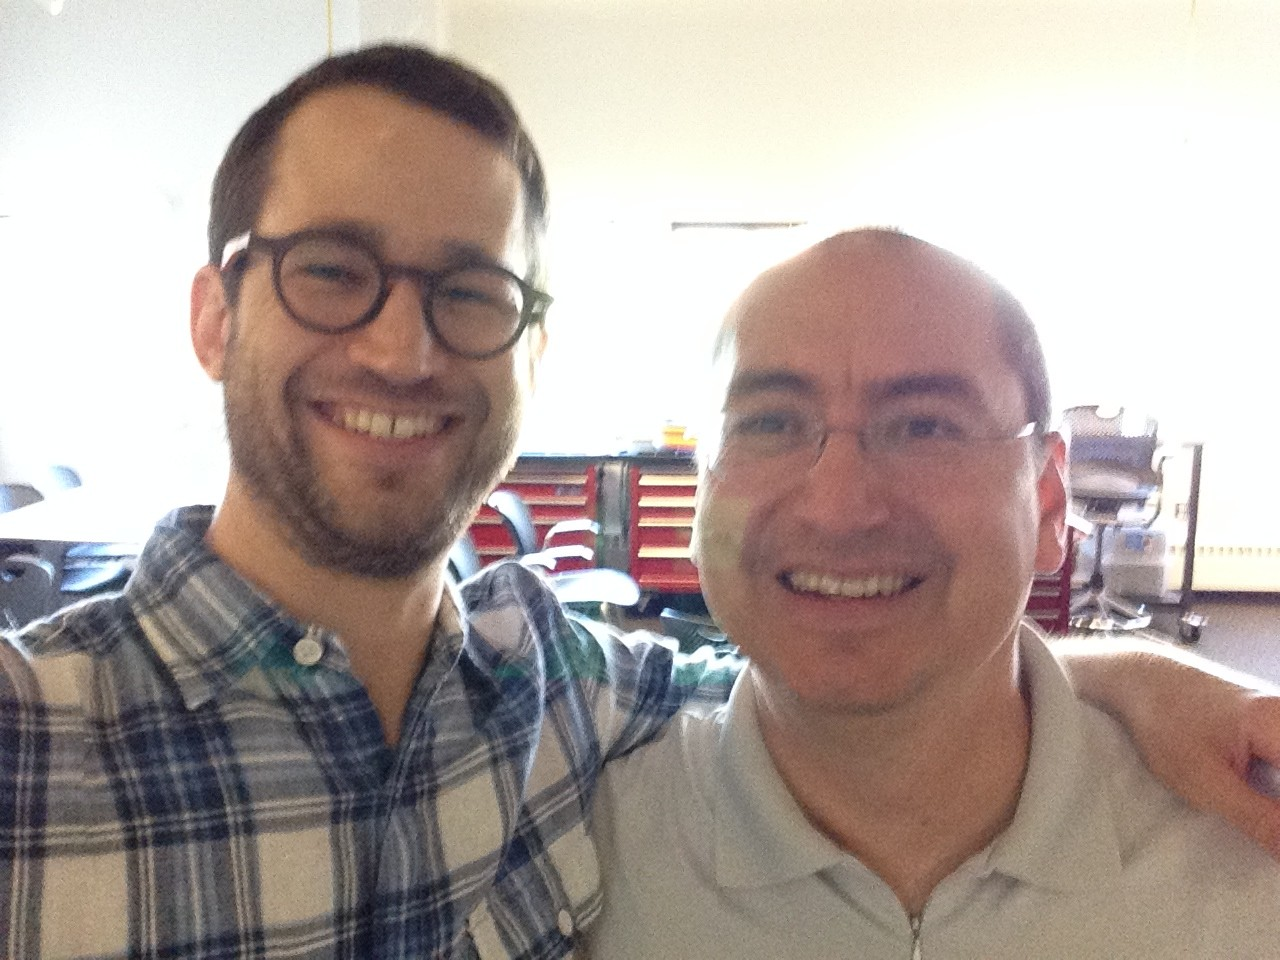 DiGRA 2014 selfie with Josh Fishburn